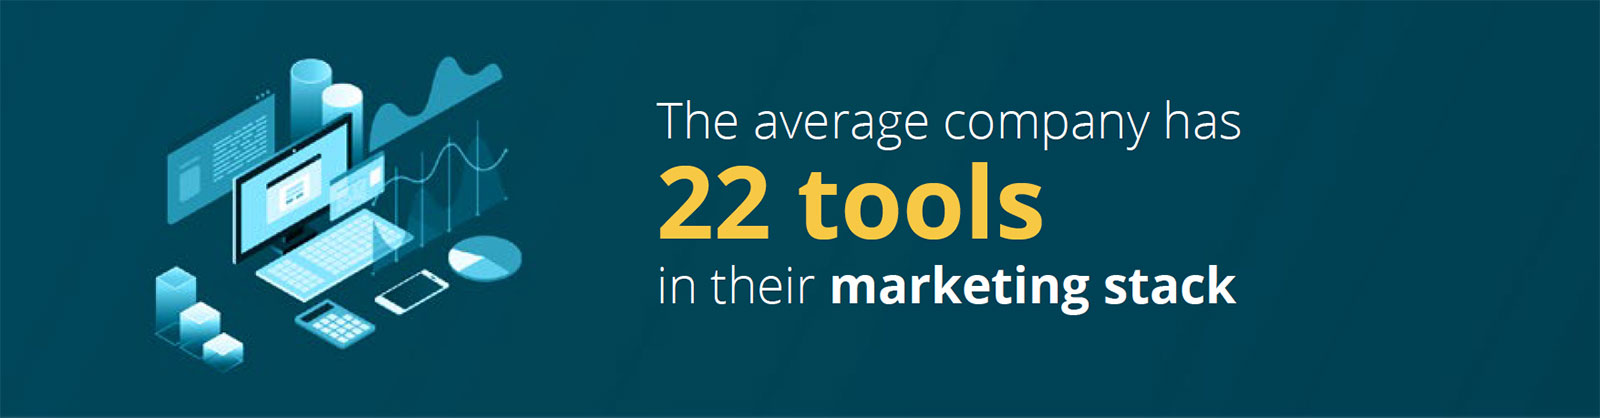 The average company has 22 tools in their marketing stack